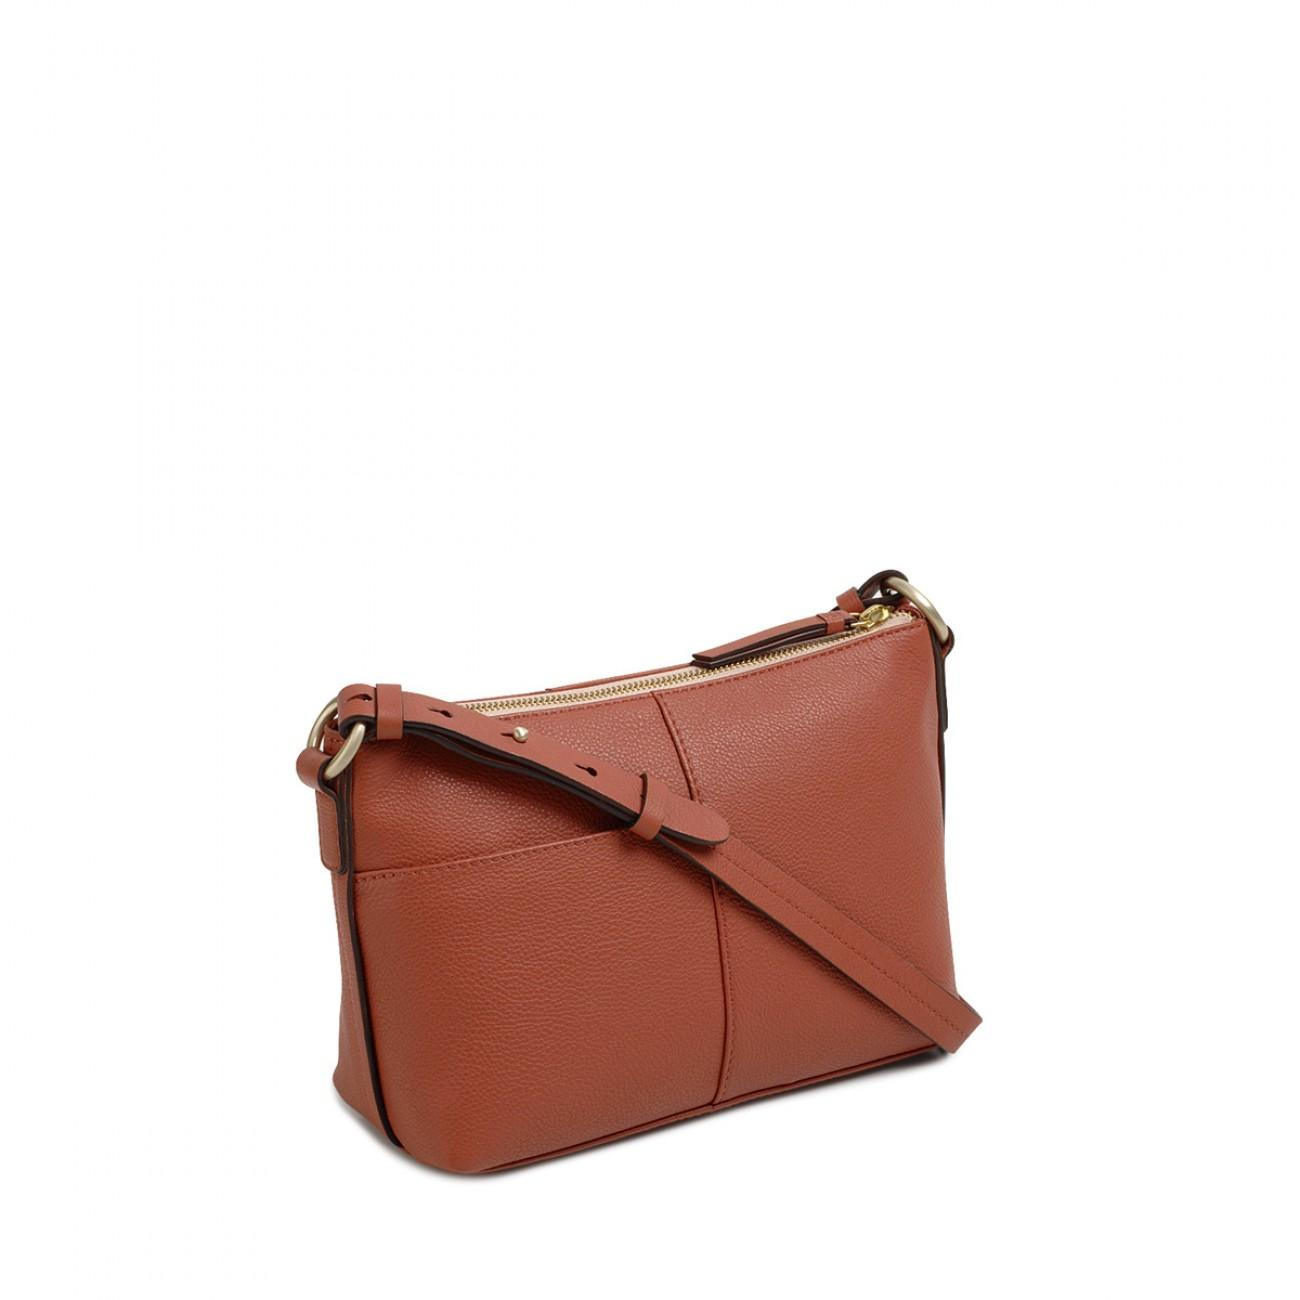 Radley - Multicolor Wood Street Medium Zip-top Cross Body Bag - Lyst. View  fullscreen ece41e9939c5c